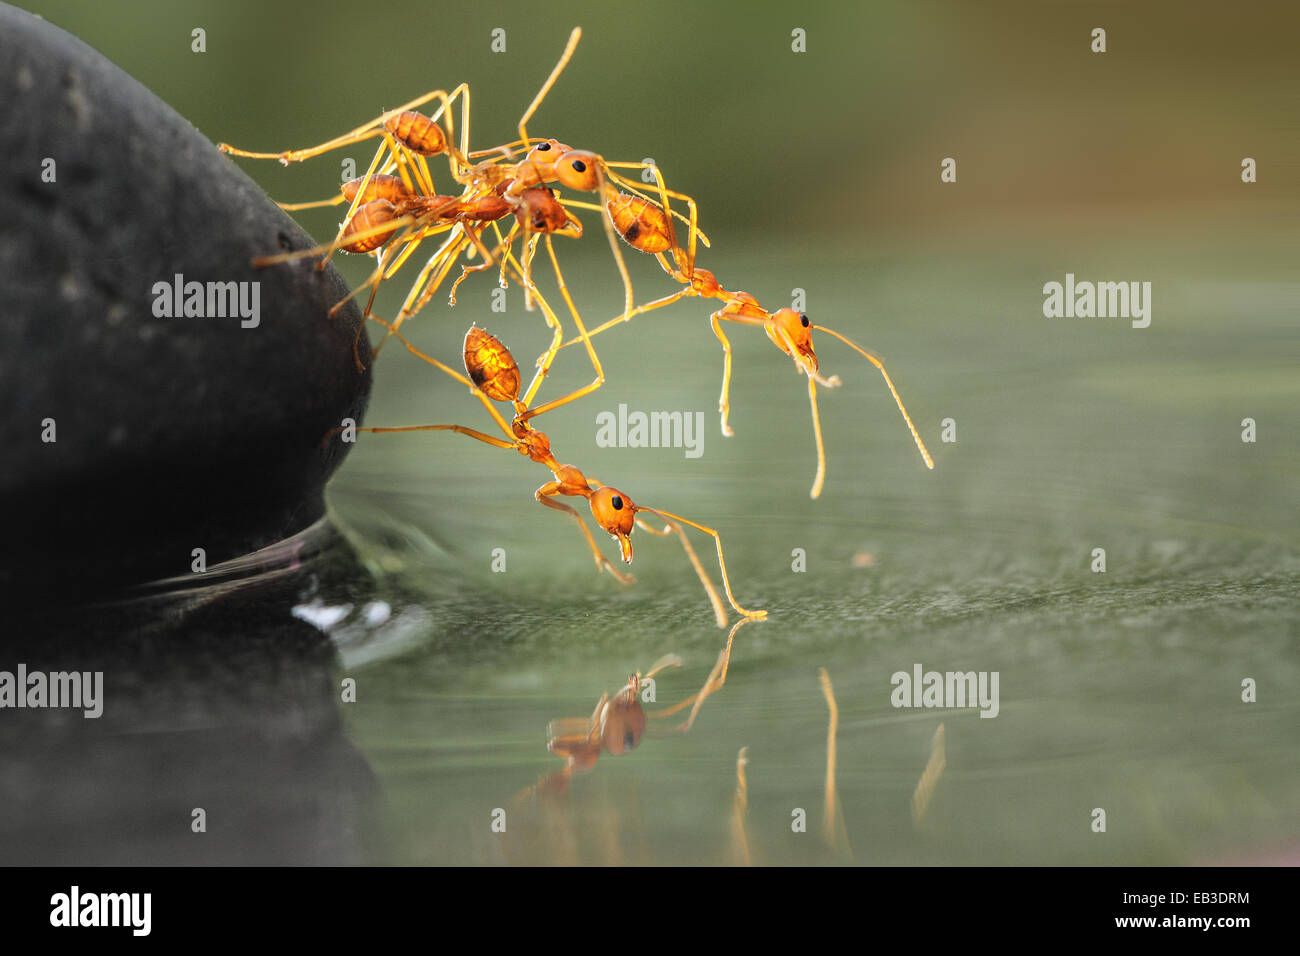 Ants helping each other - Stock Image